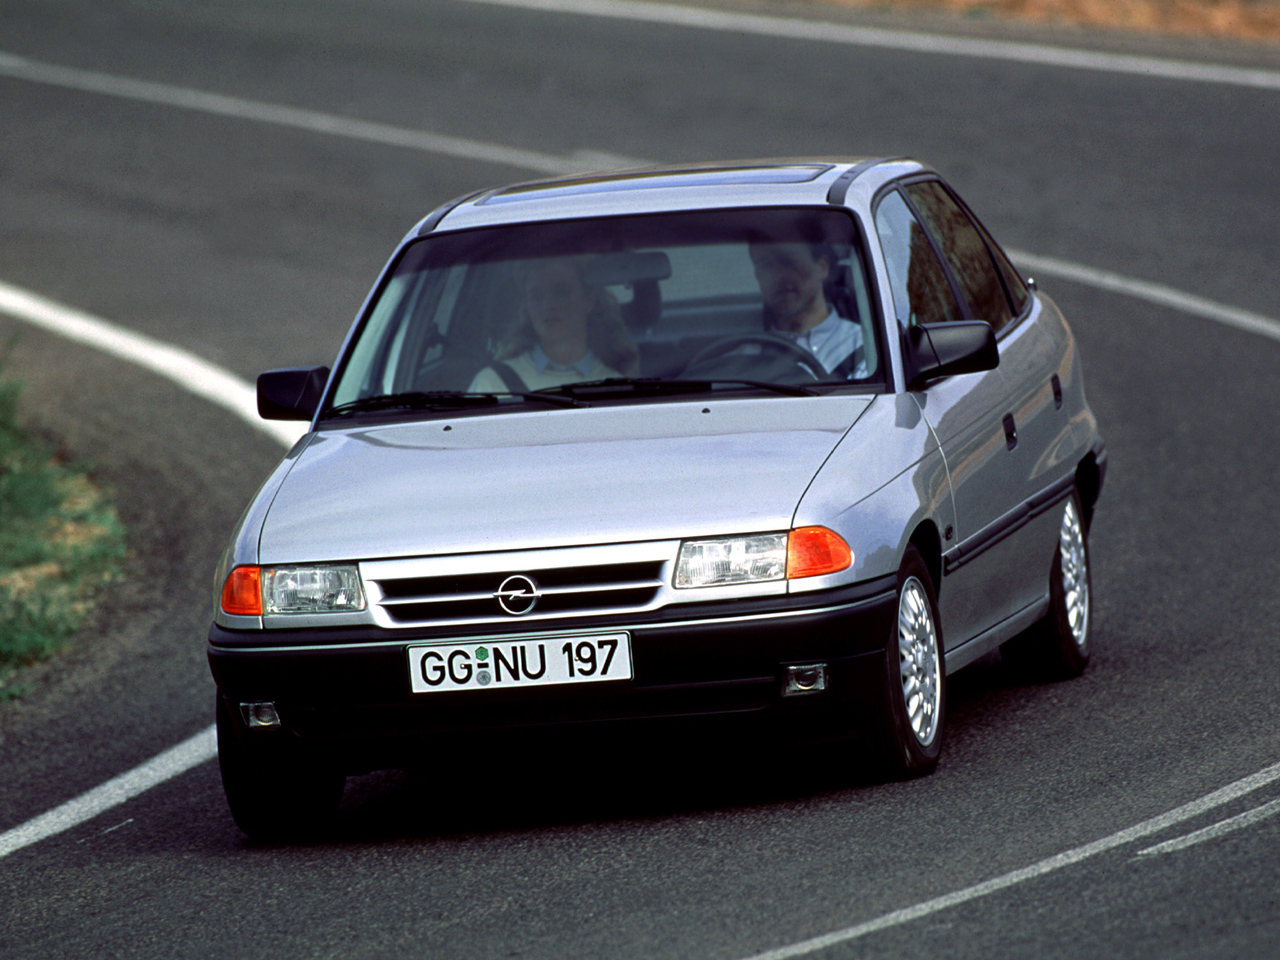 1991 Opel Astra Hatchback 5-door